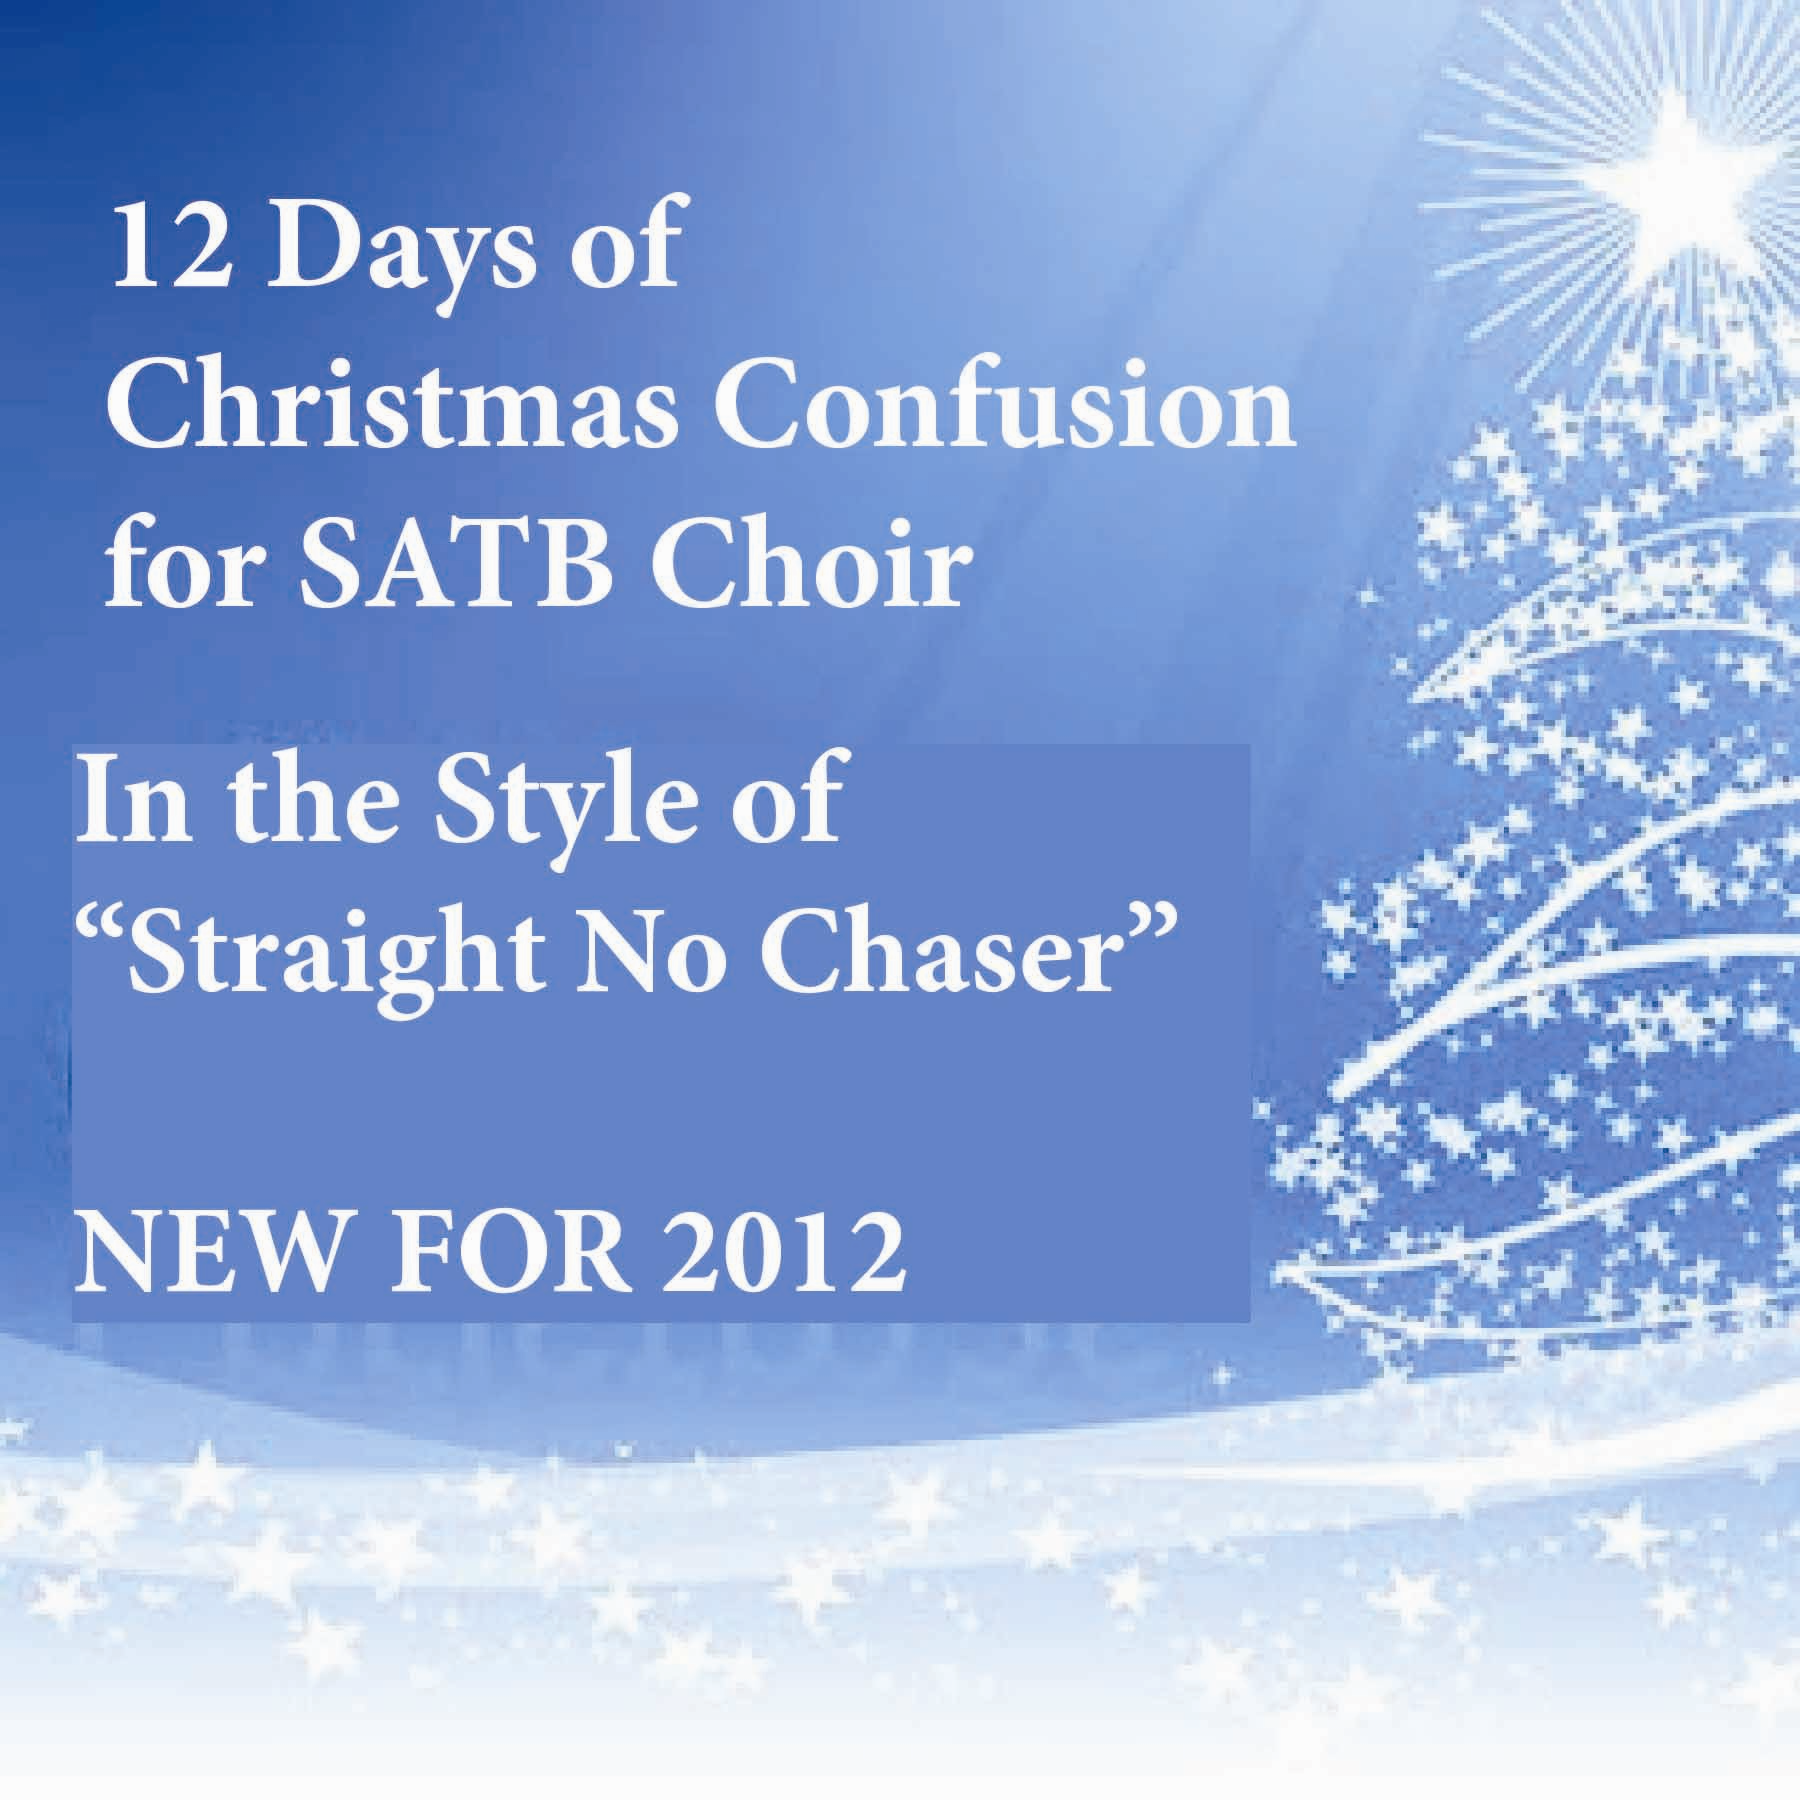 12 Days of Christmas Confusion for SATB Choir - Straight No Chaser ...